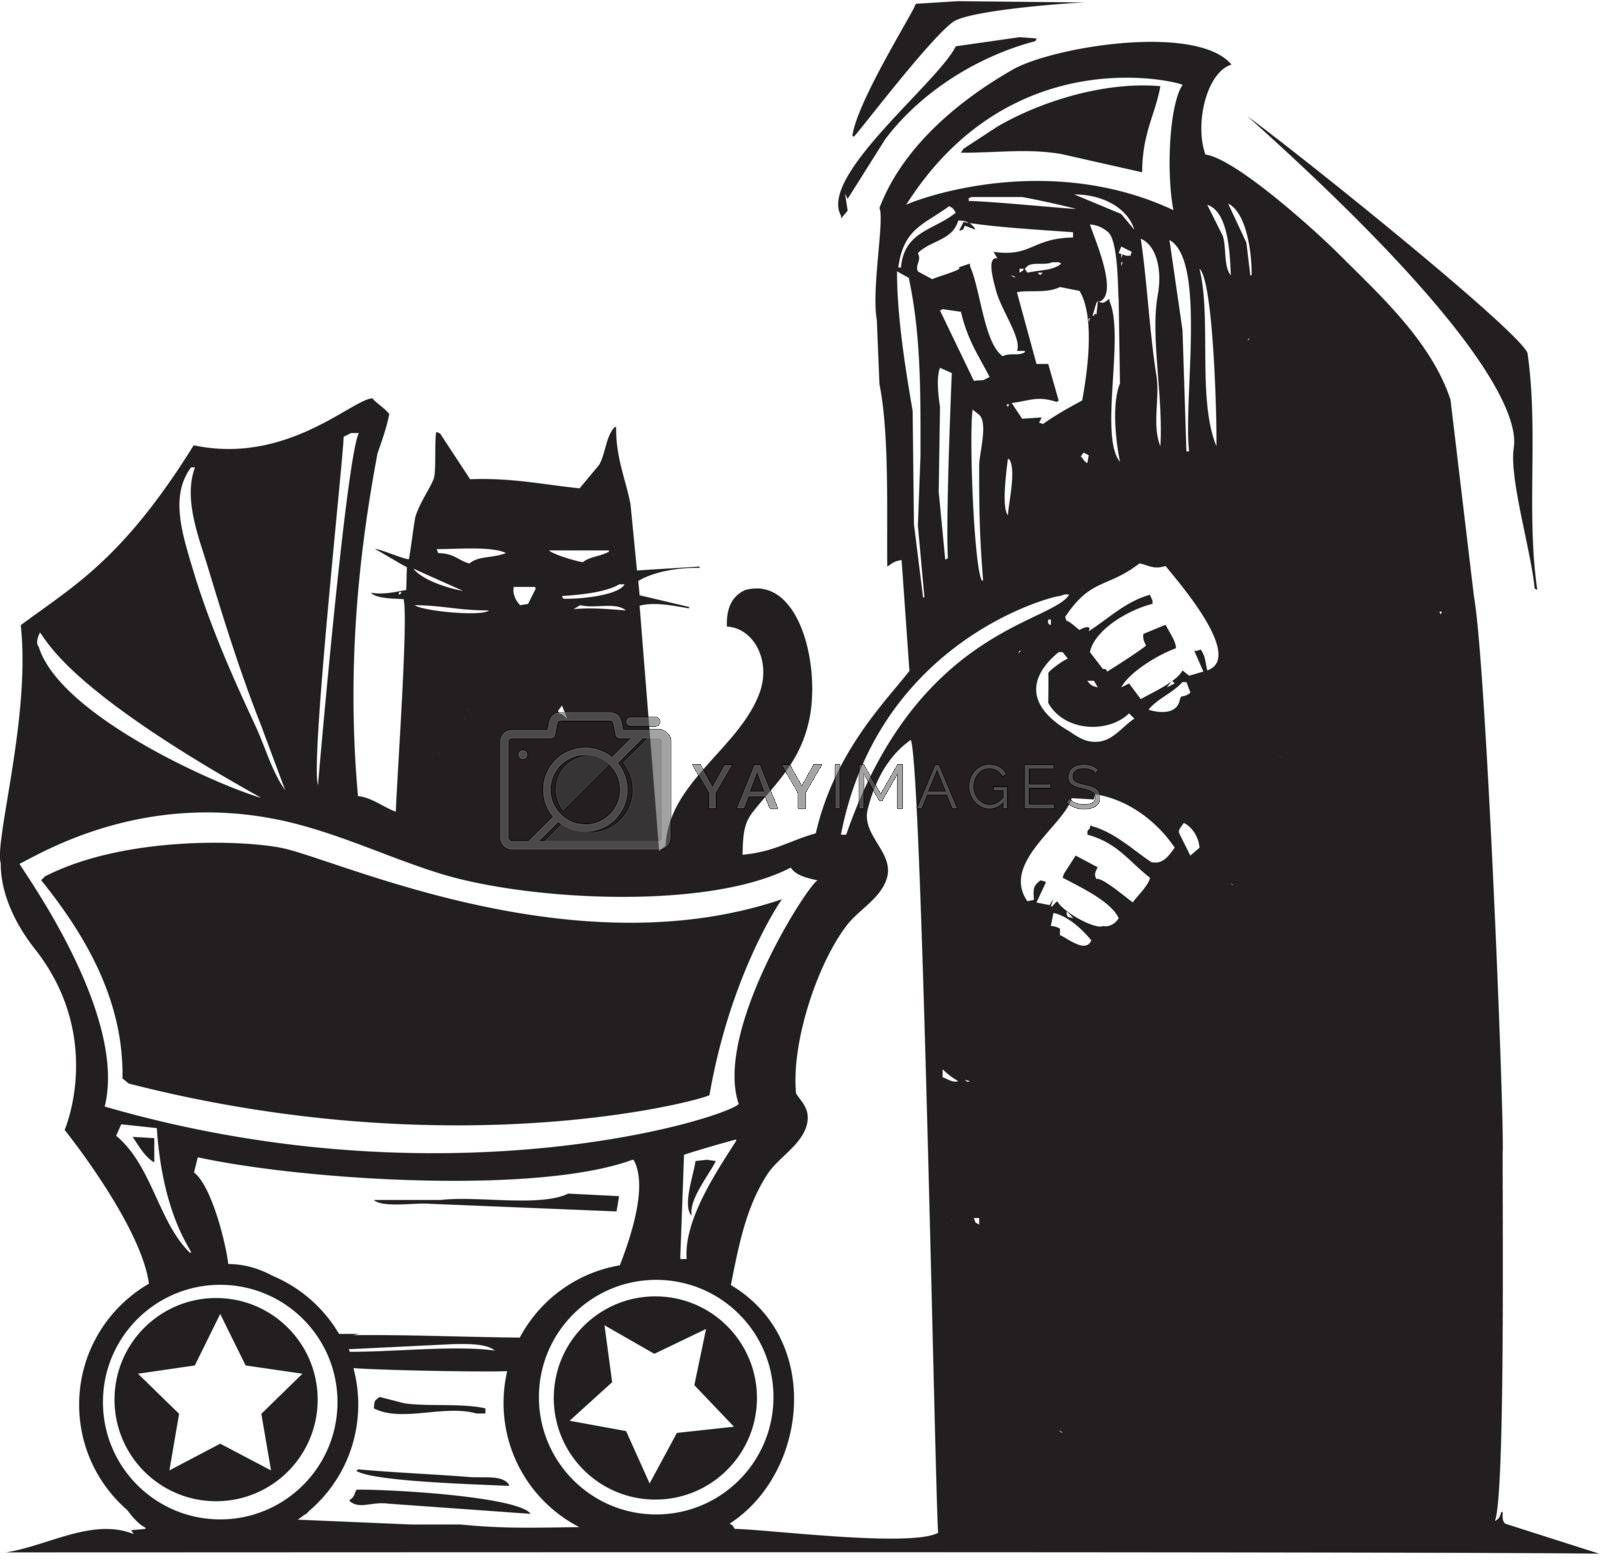 Lonely Old woman pushing a cat around in a baby carriage